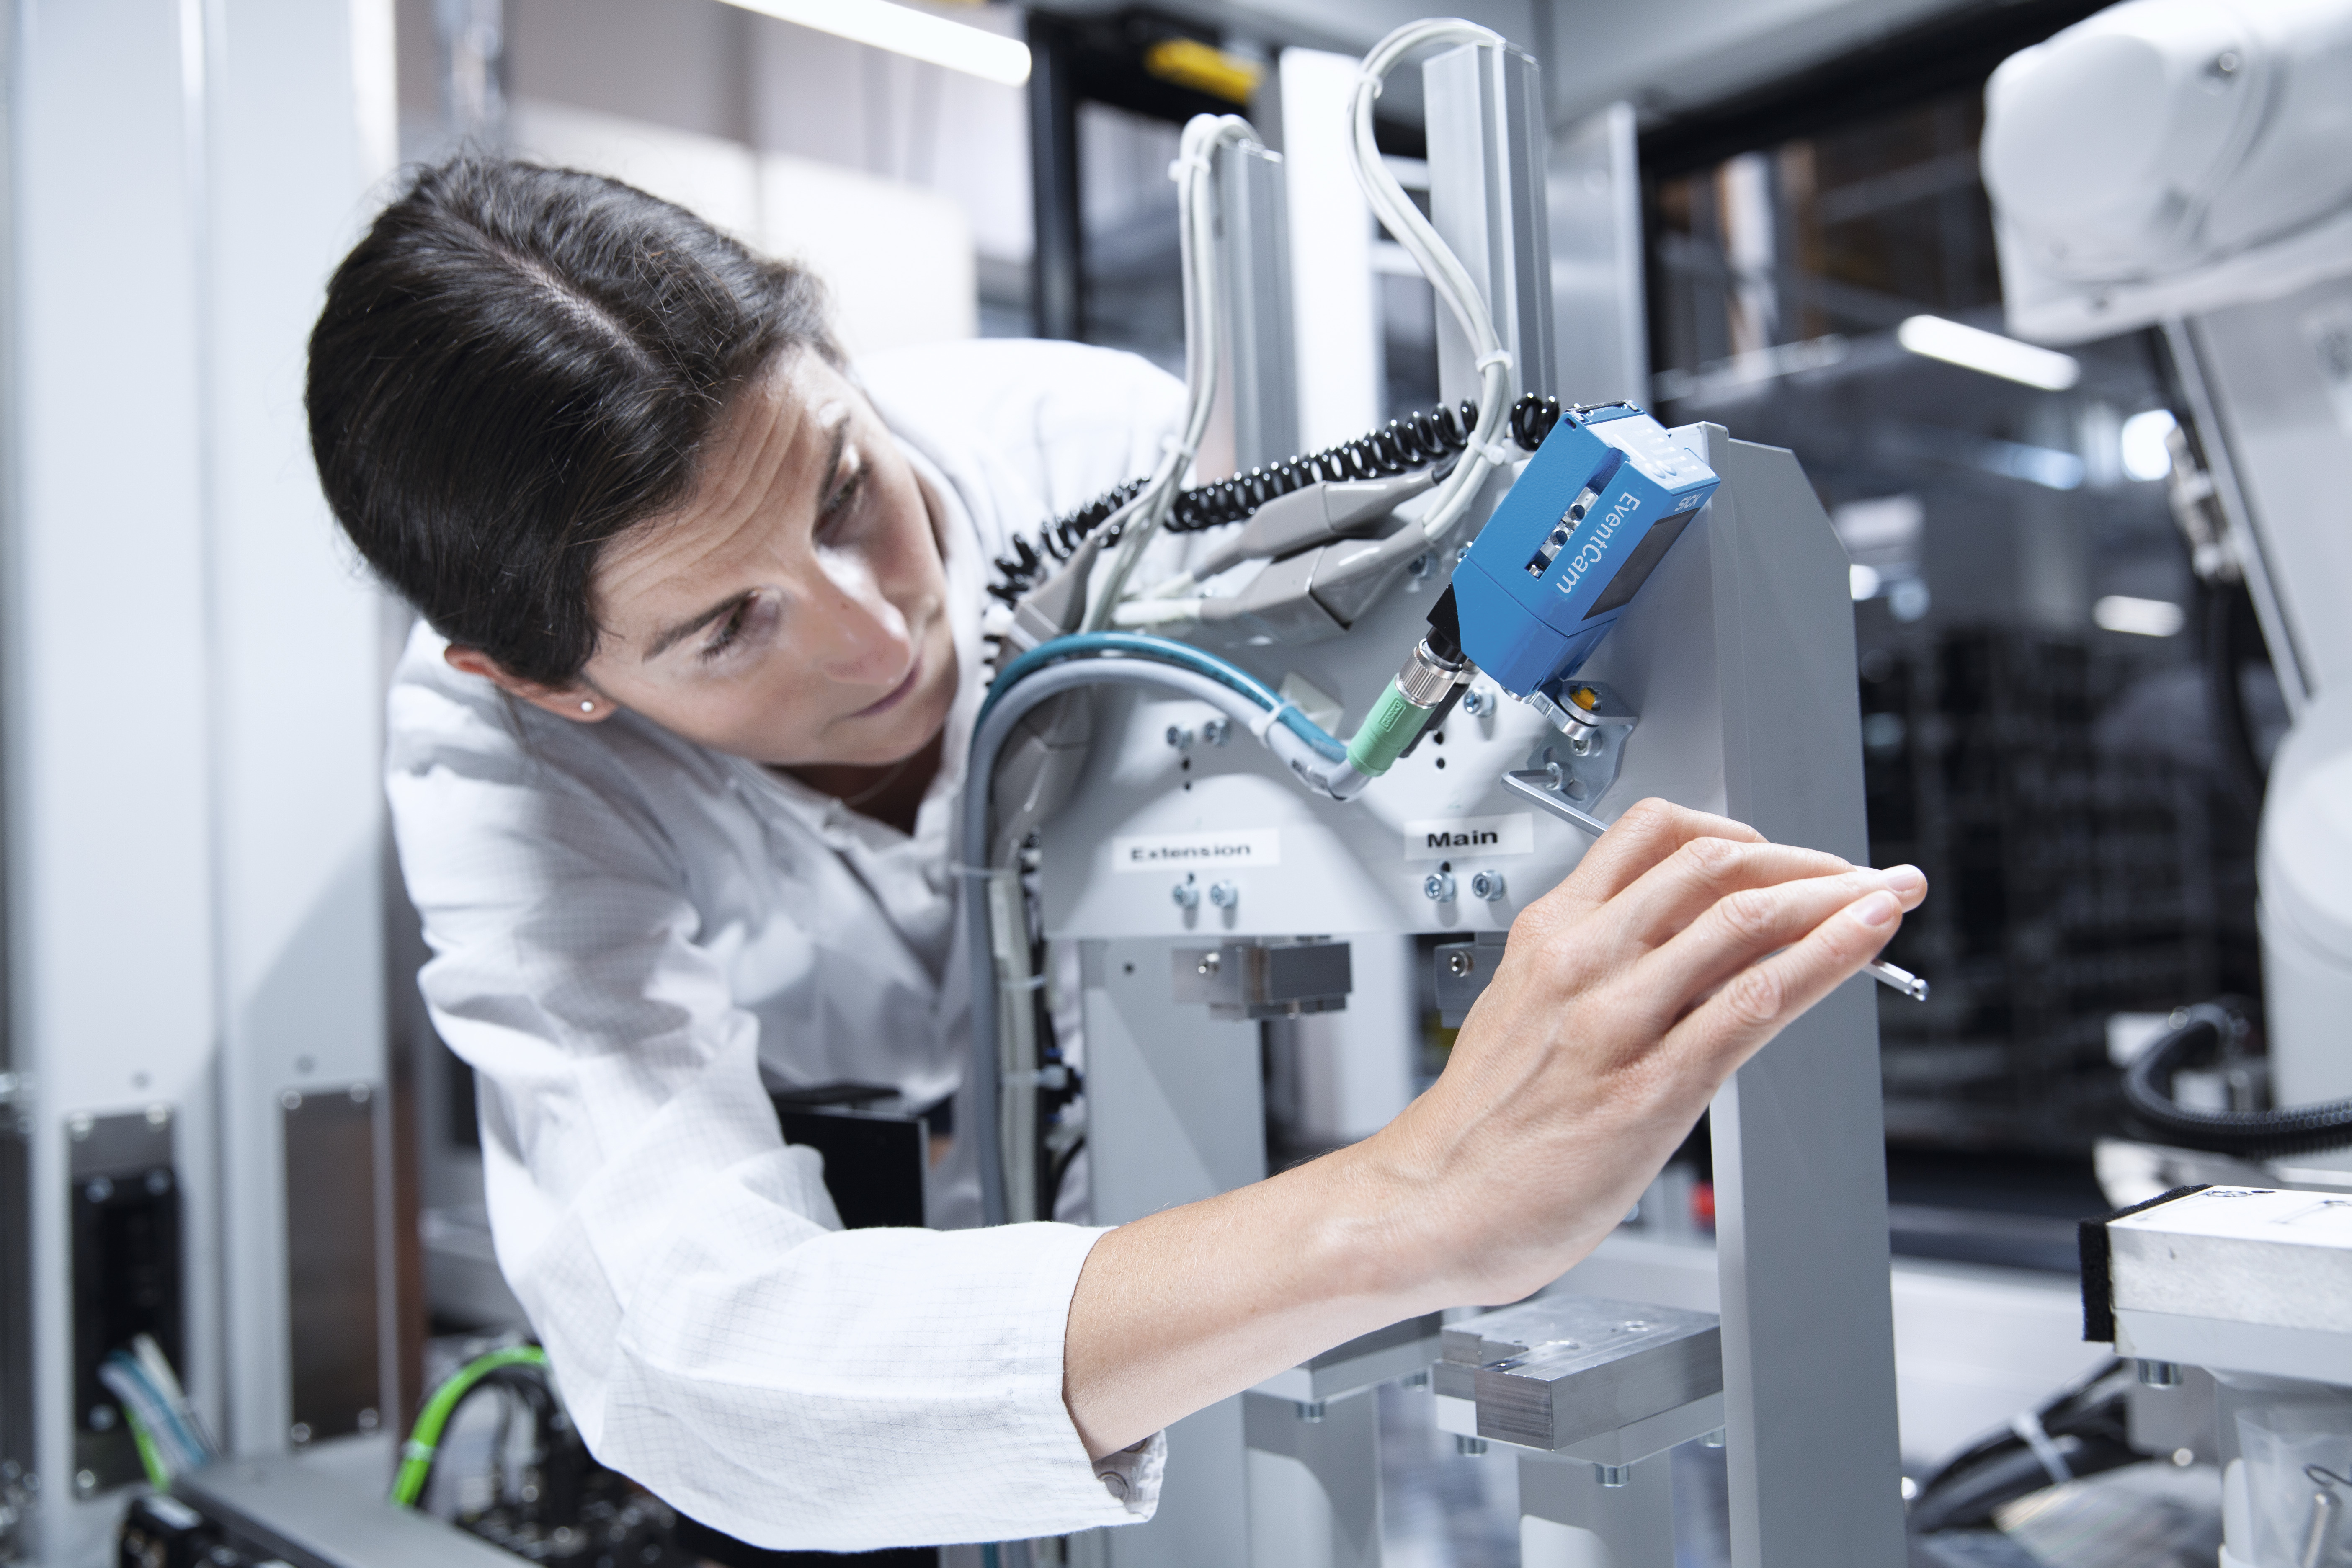 industry 4.0 production, Tailor-Made Production Makes Industry 4.0 Possible